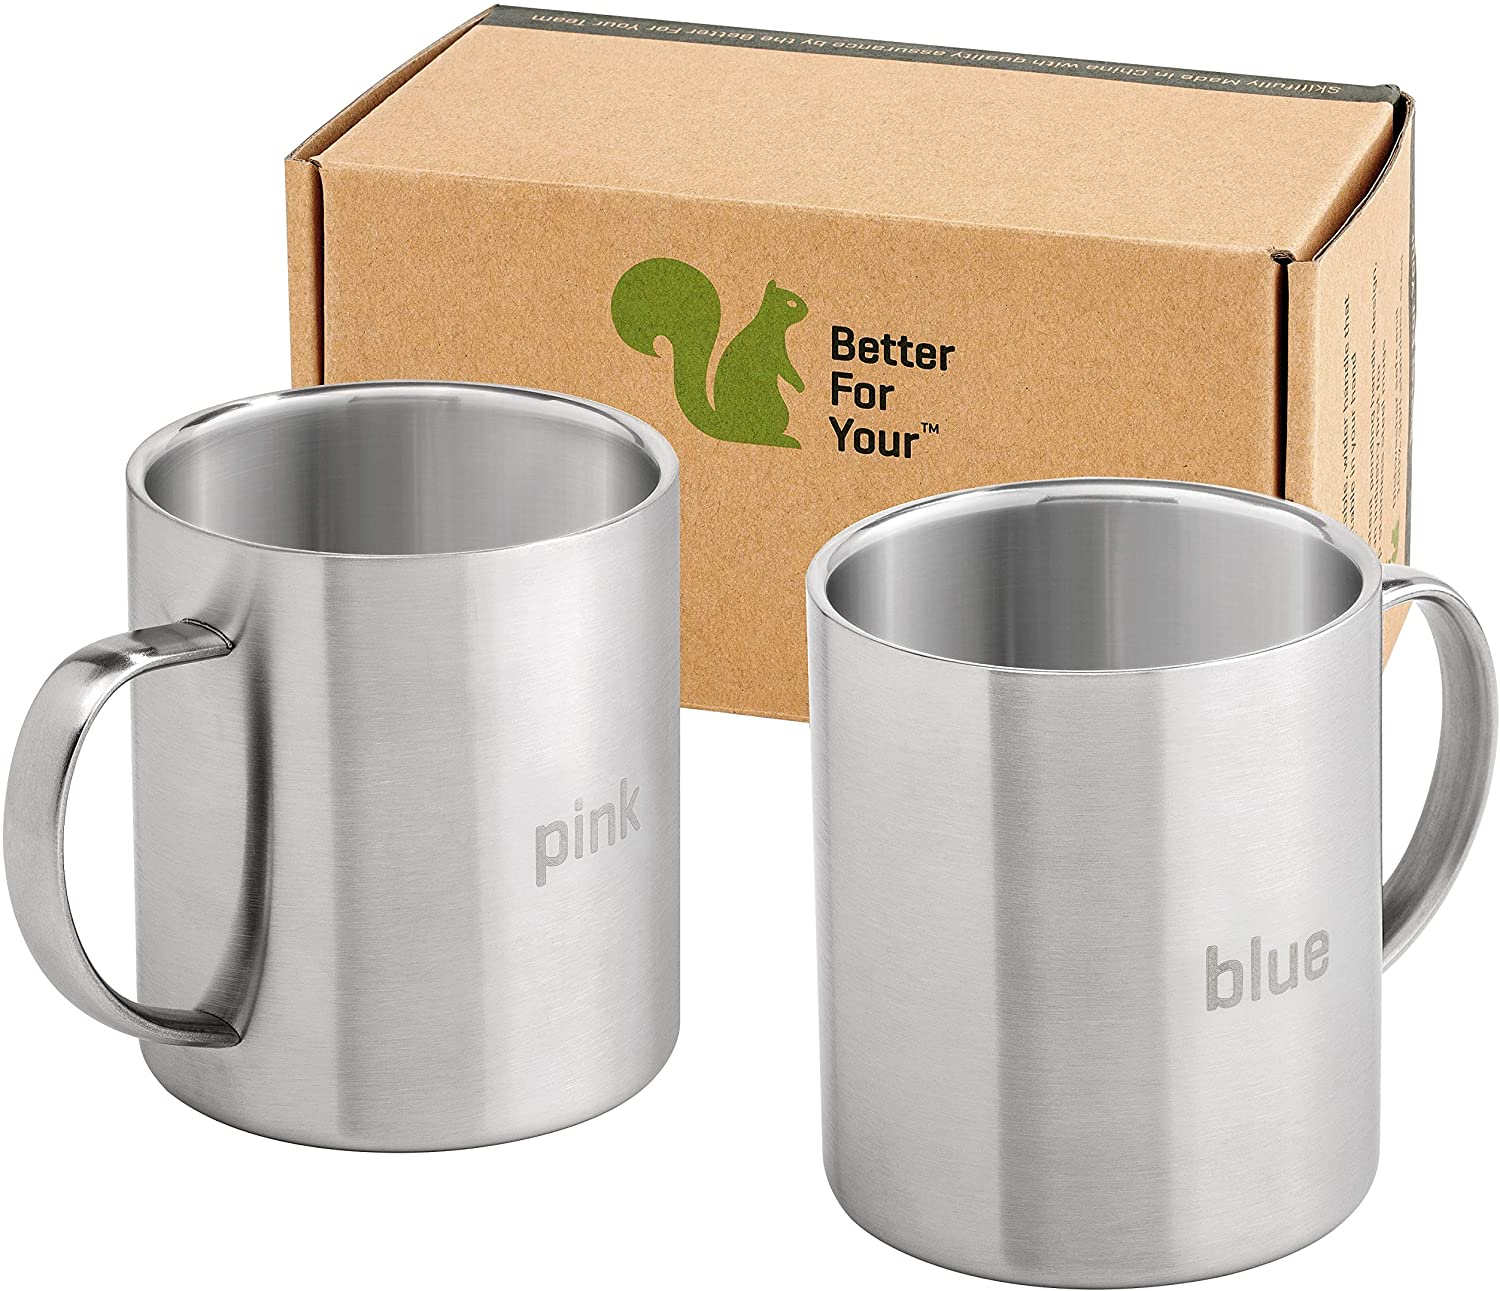 Better for your coffee mugs stainless steel